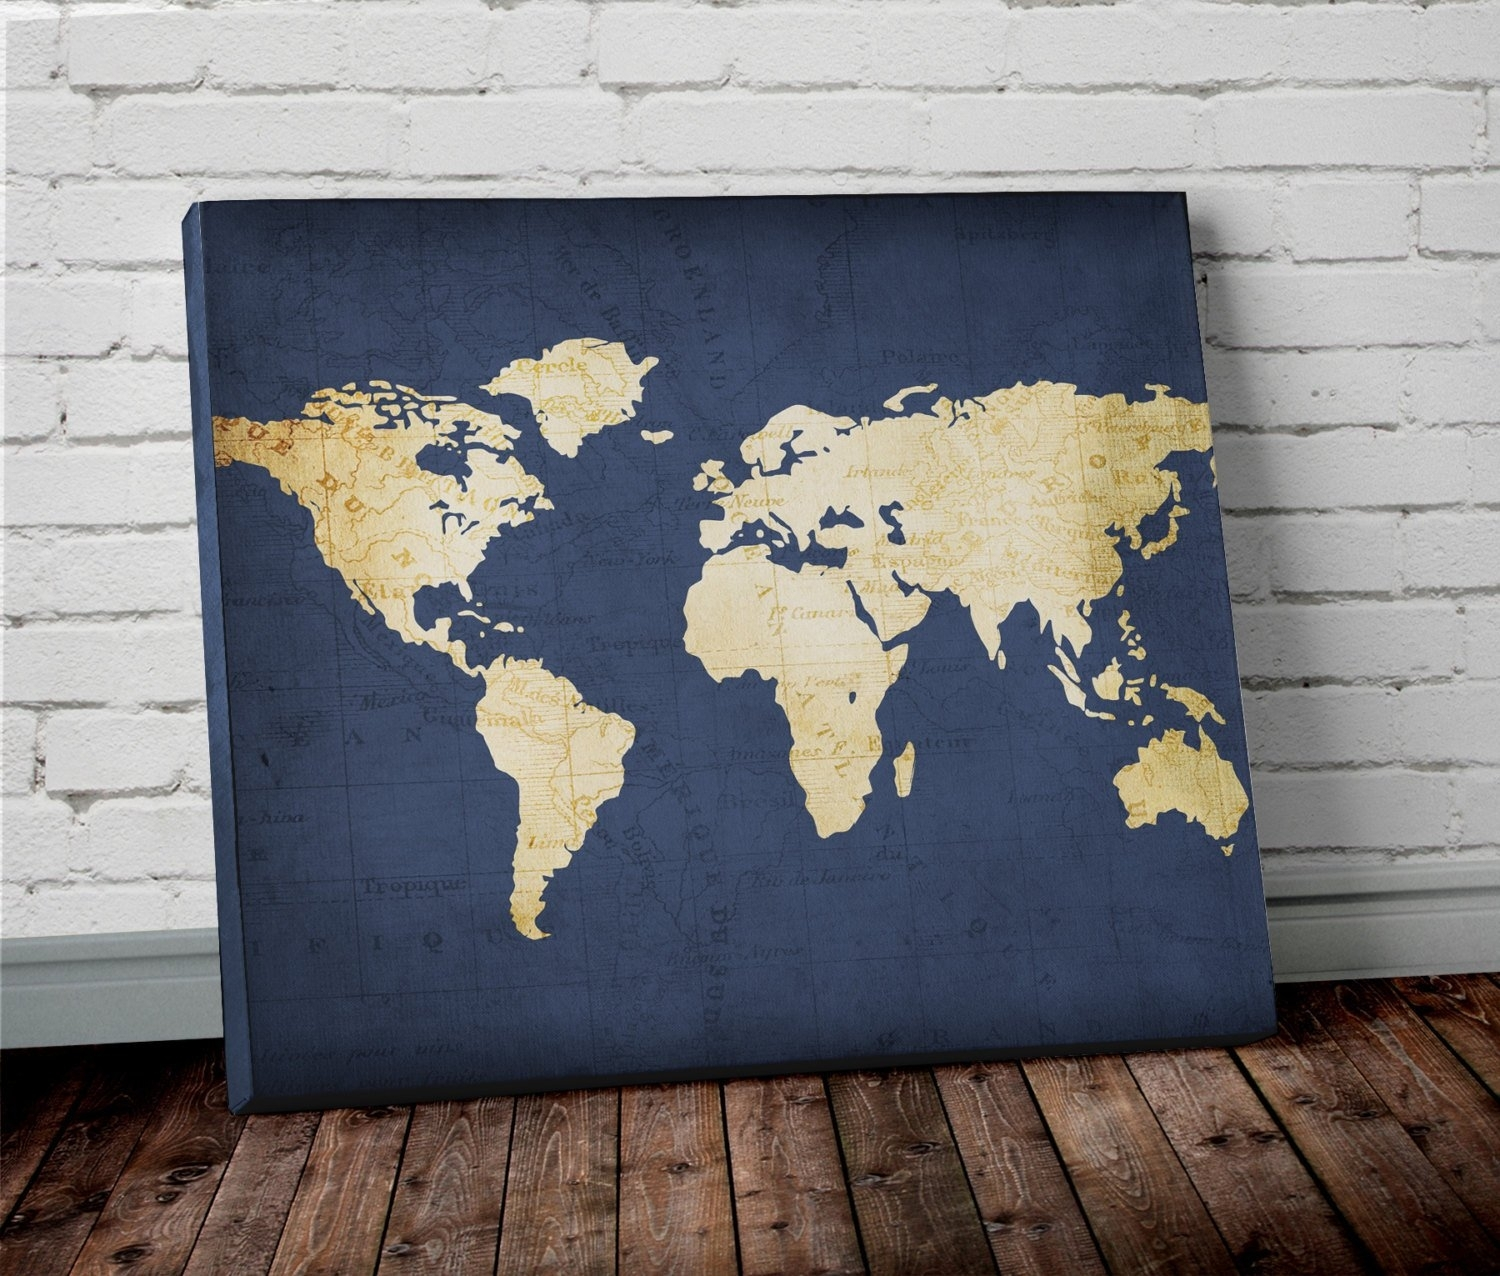 Navy World Map Wall Art Canvas World Map Print In Navy Blue | Etsy Regarding World Map Wall Art Canvas (View 6 of 20)